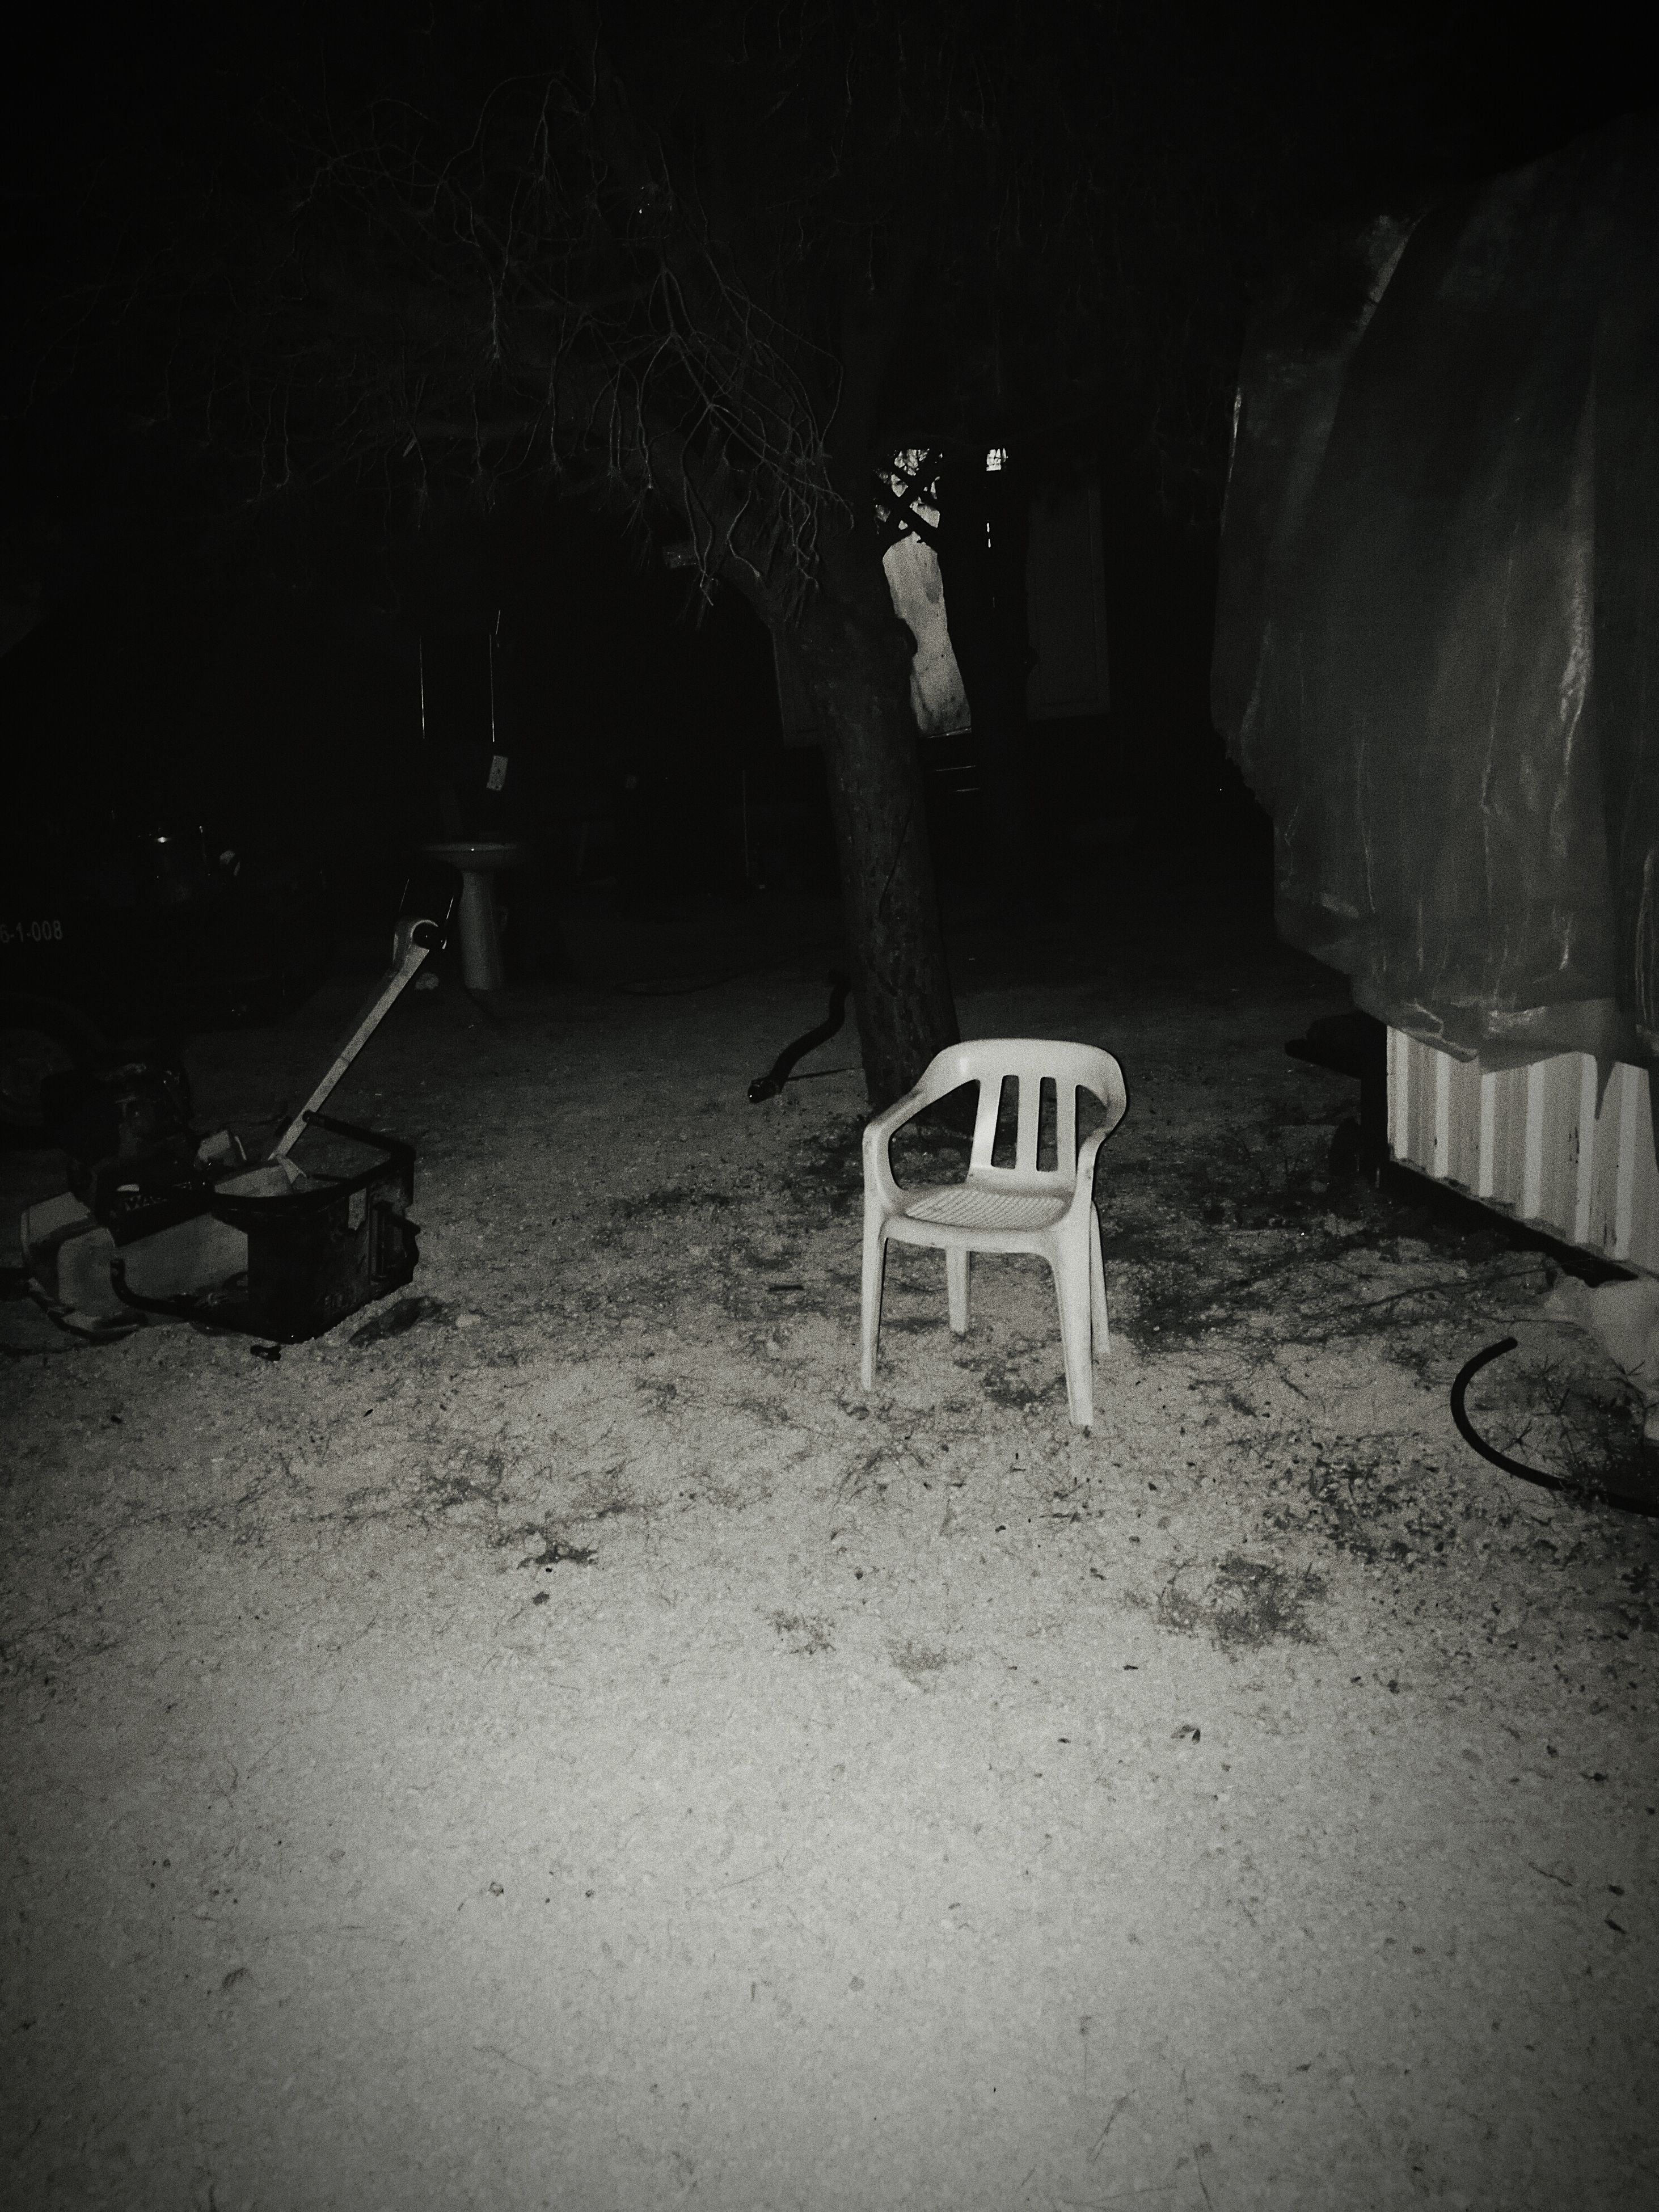 chair, table, seat, outdoors, solitude, group of objects, tranquility, large group of objects, no people